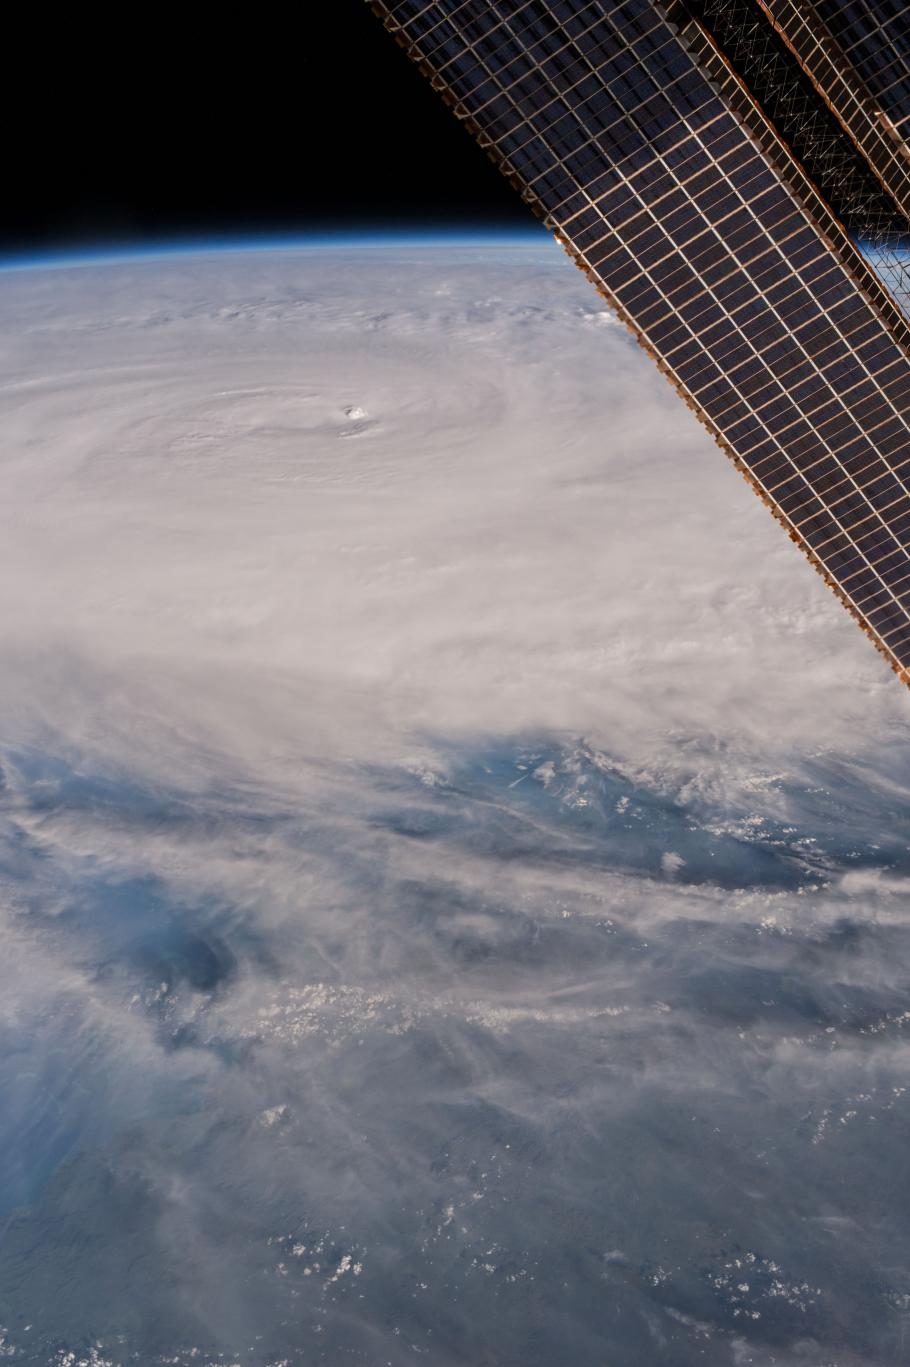 An image of the Earth with a major storm apparent.